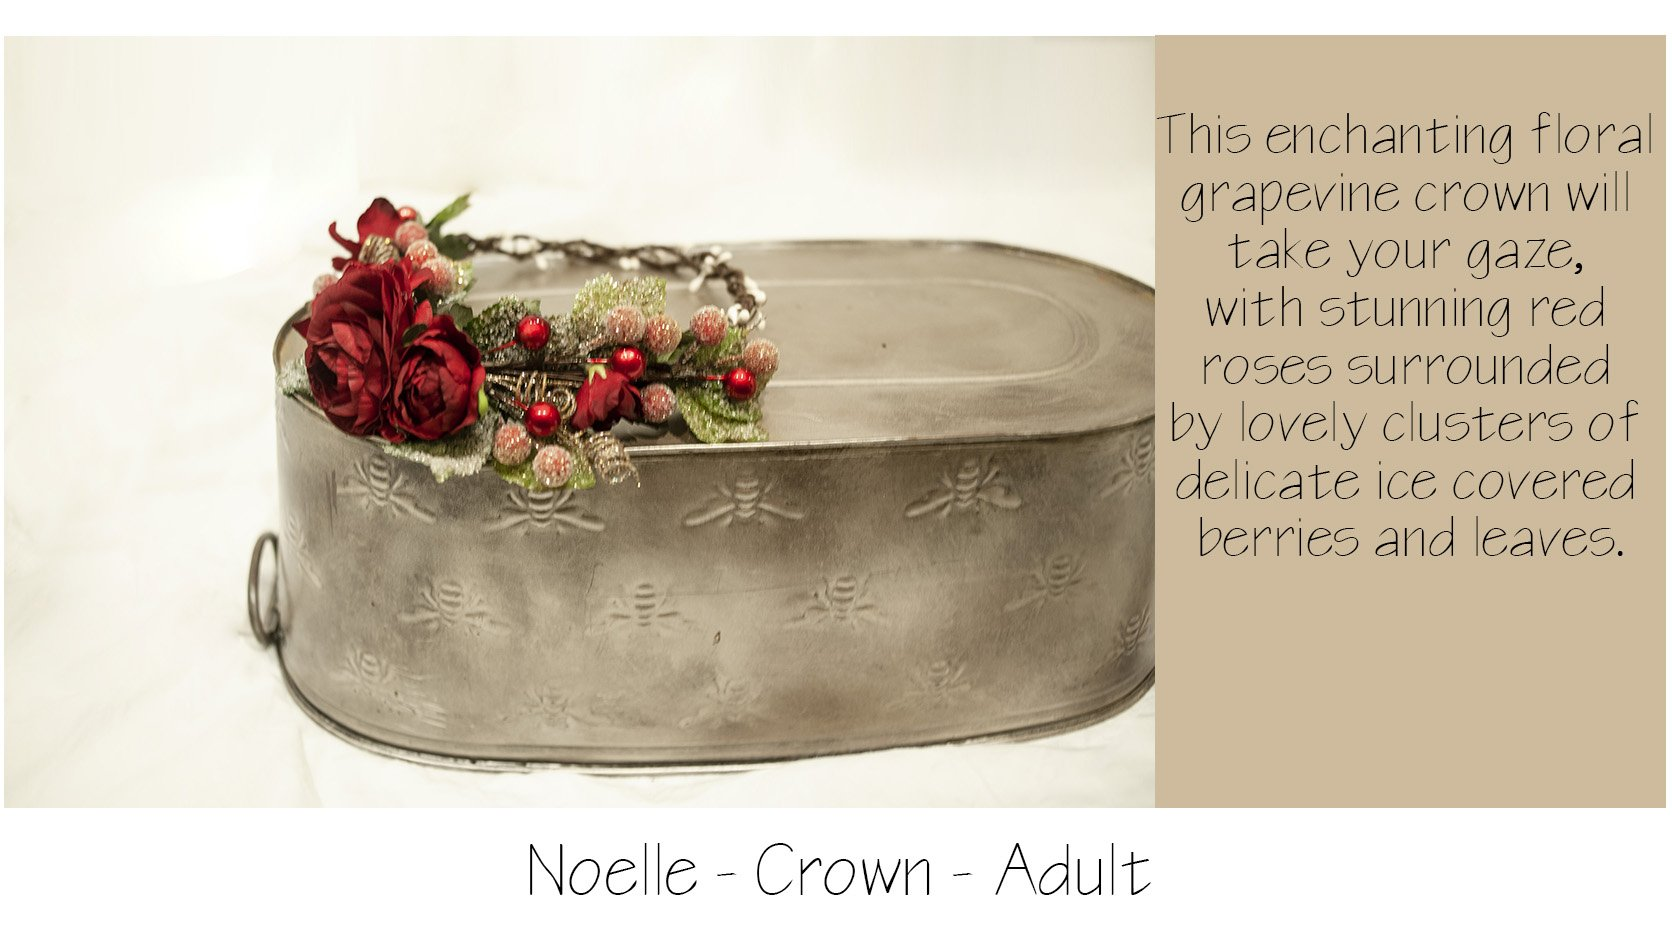 noelle floral crown with red roses and frosted berries